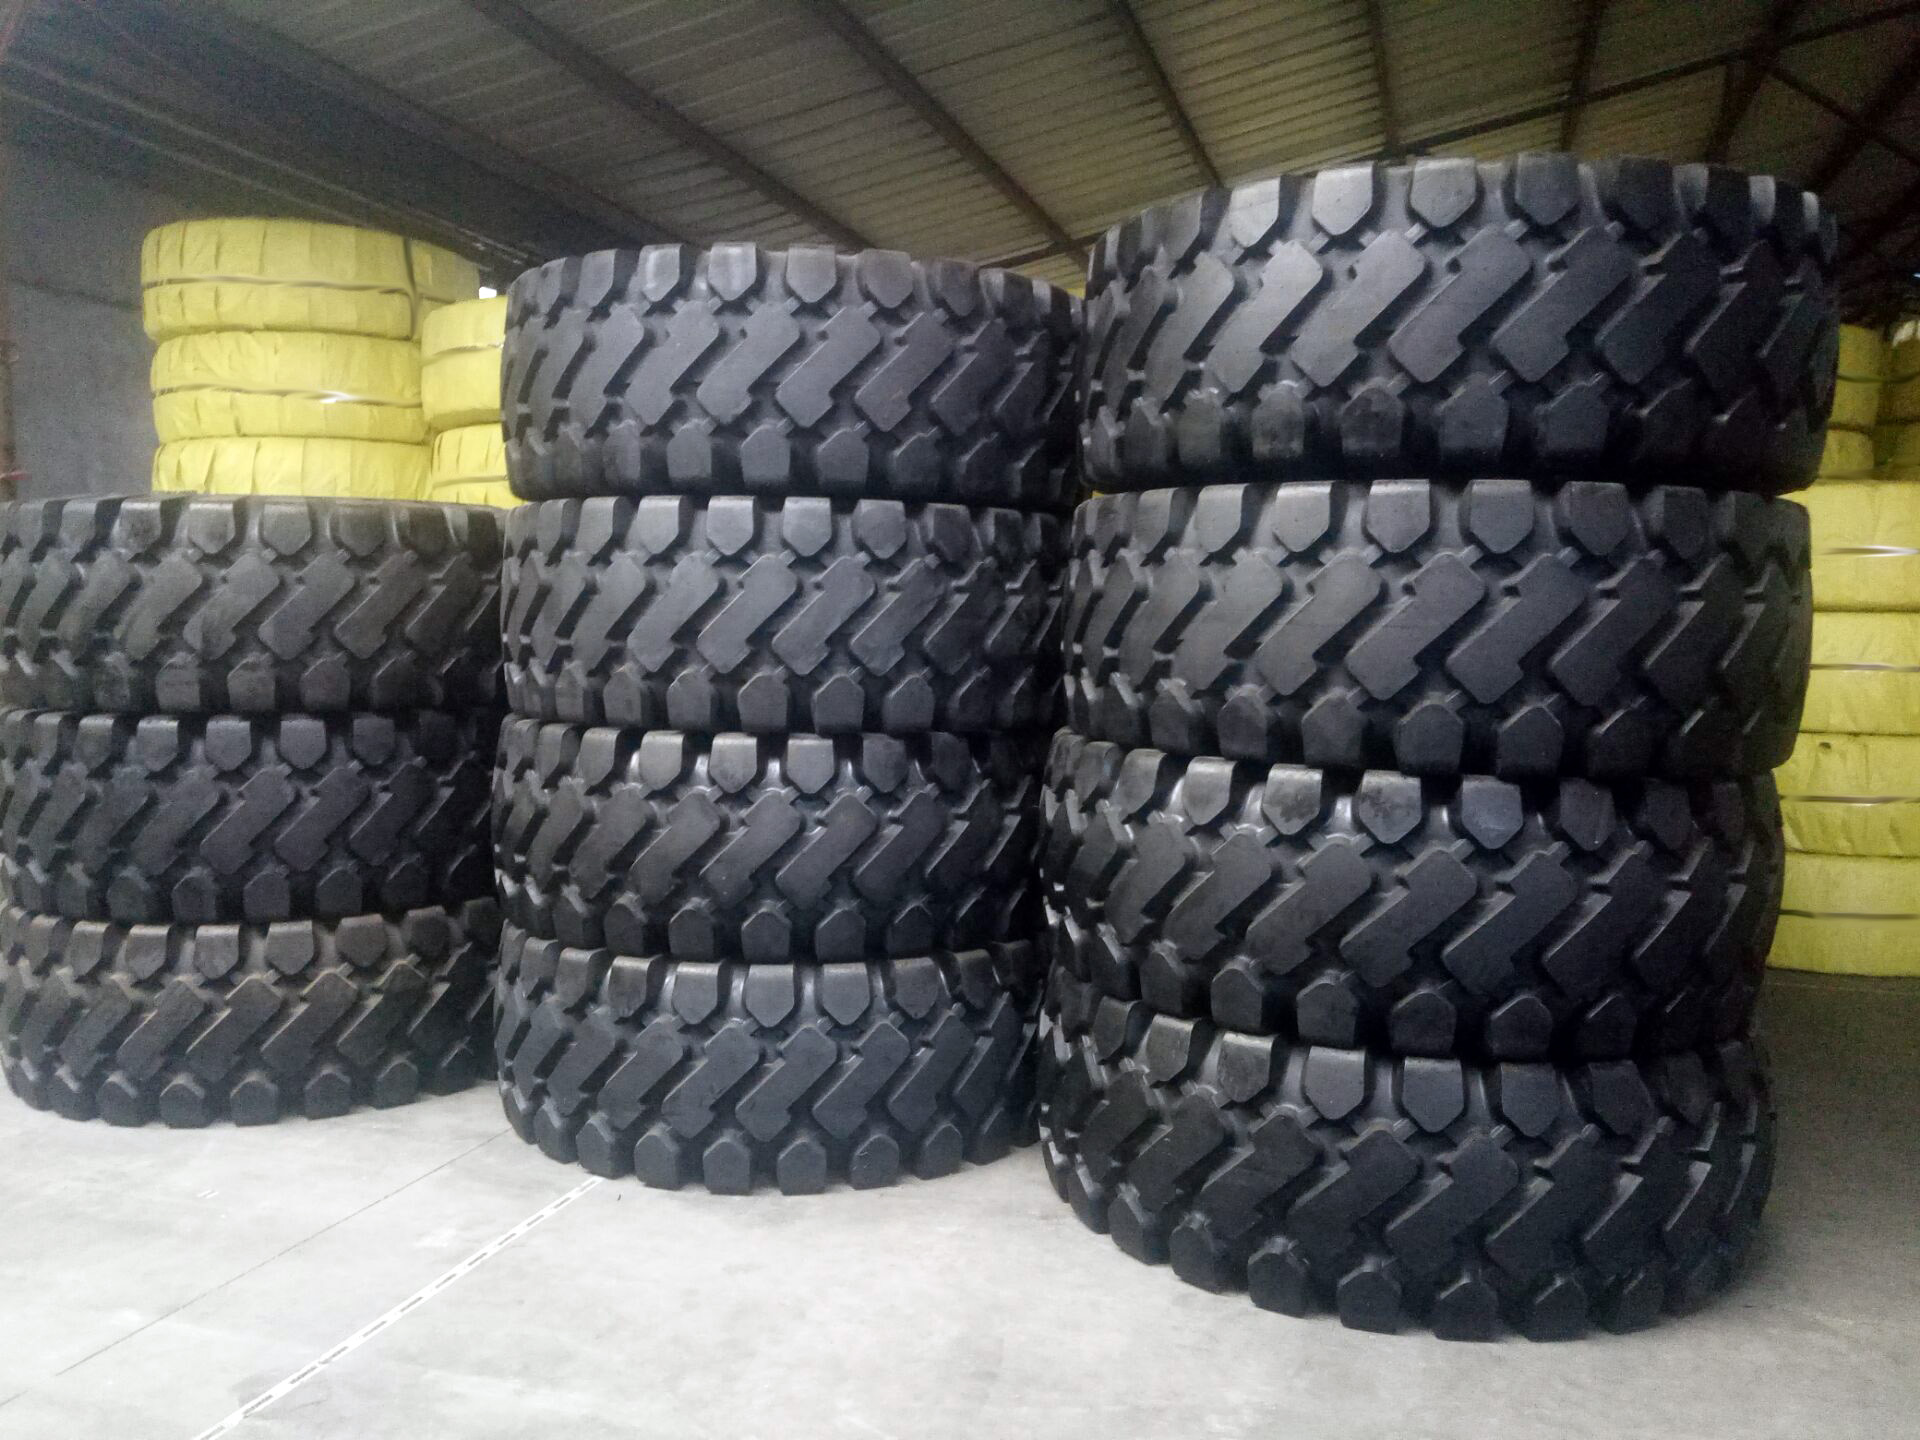 Bias OTR Tires 17.5-25 20.5-25 23.5-25 26.5-25 29.5-25  Loader Tyre from China factory